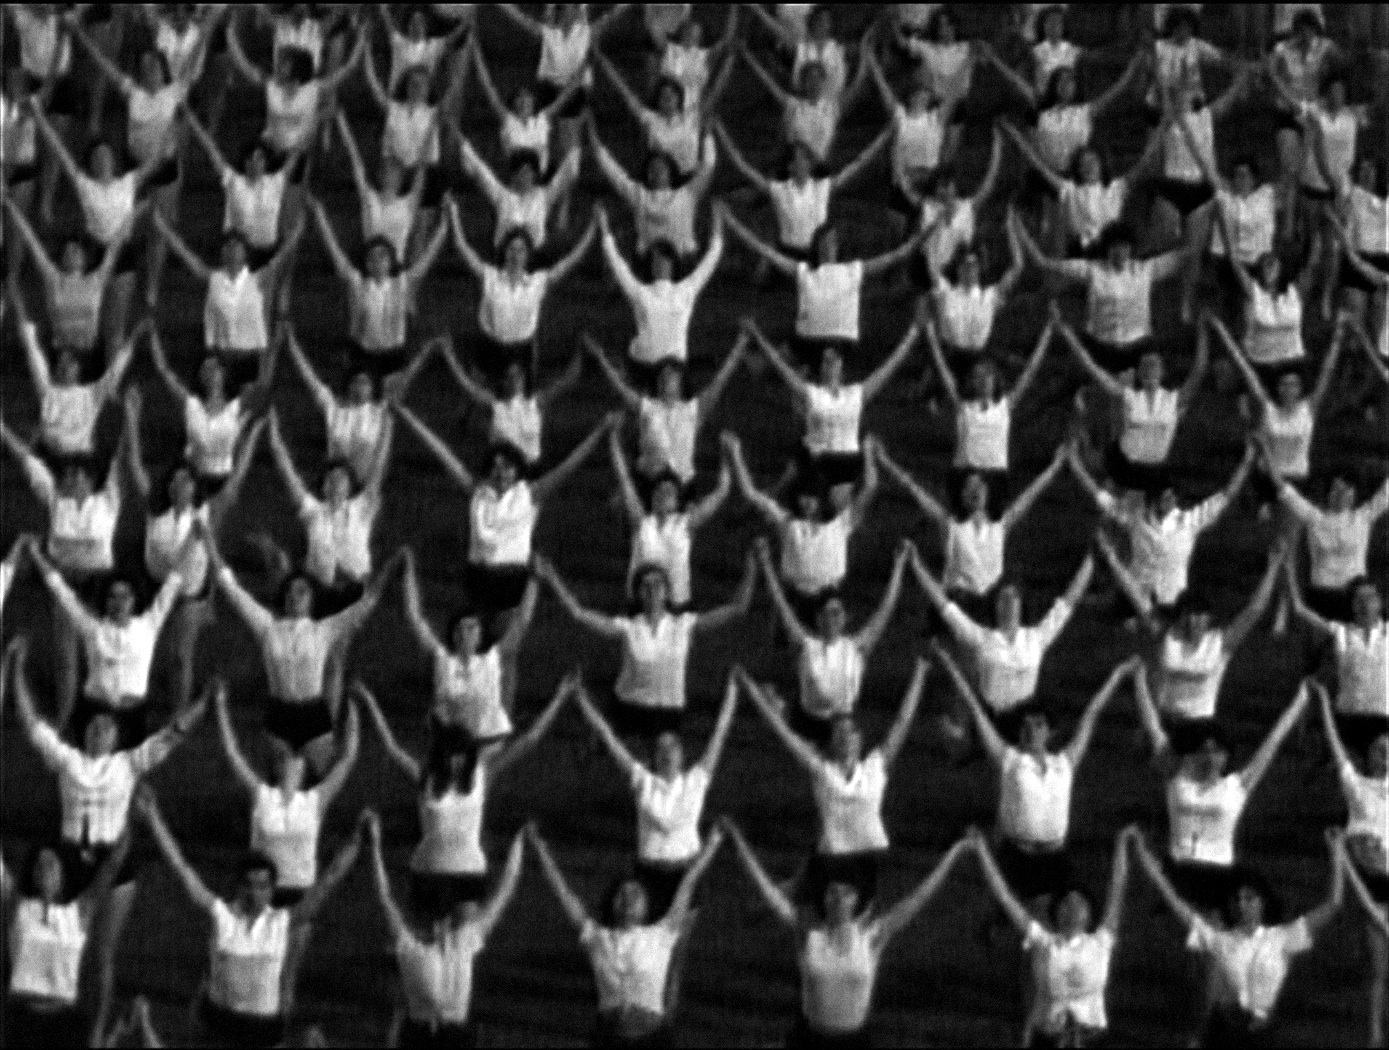 Marta Popivoda, Yugoslavia: How Ideology Moved Our Collective Body (still), 62 min, 2013. Image courtesy of the artist. (Scene Three: The Square 0)